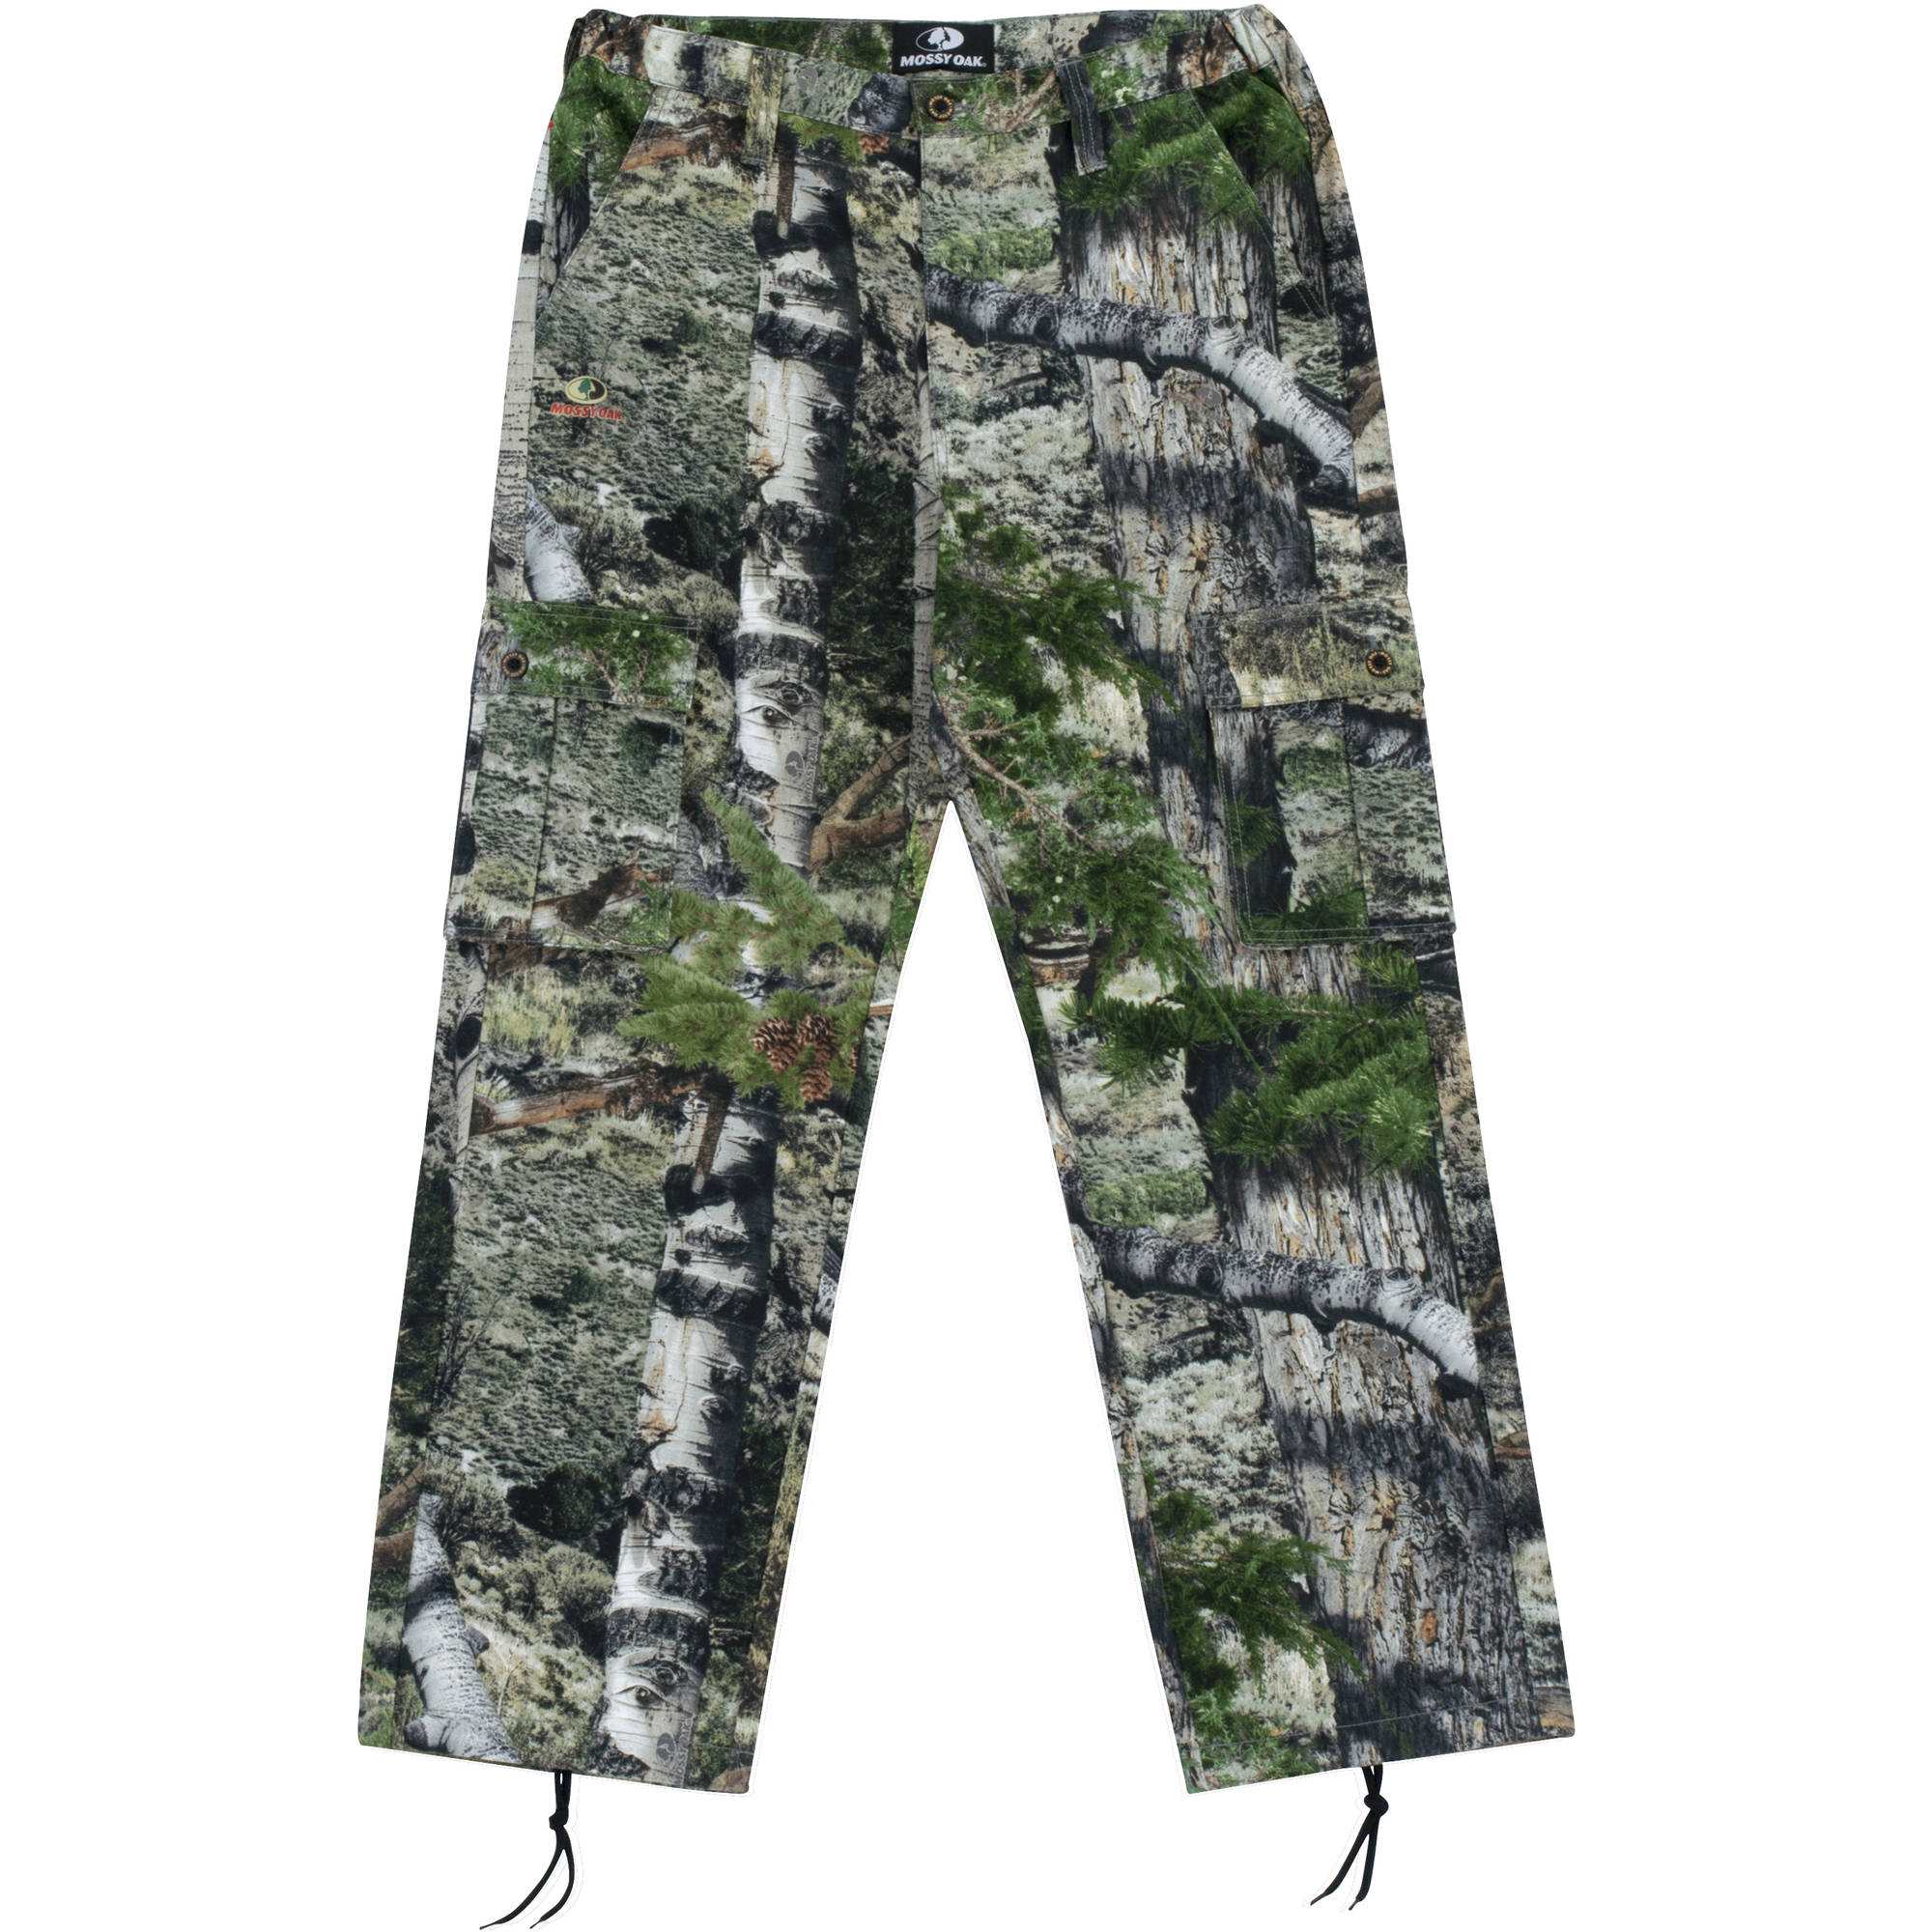 Mossy Oak Men's Cargo Pants, Available in Multiple Patterns